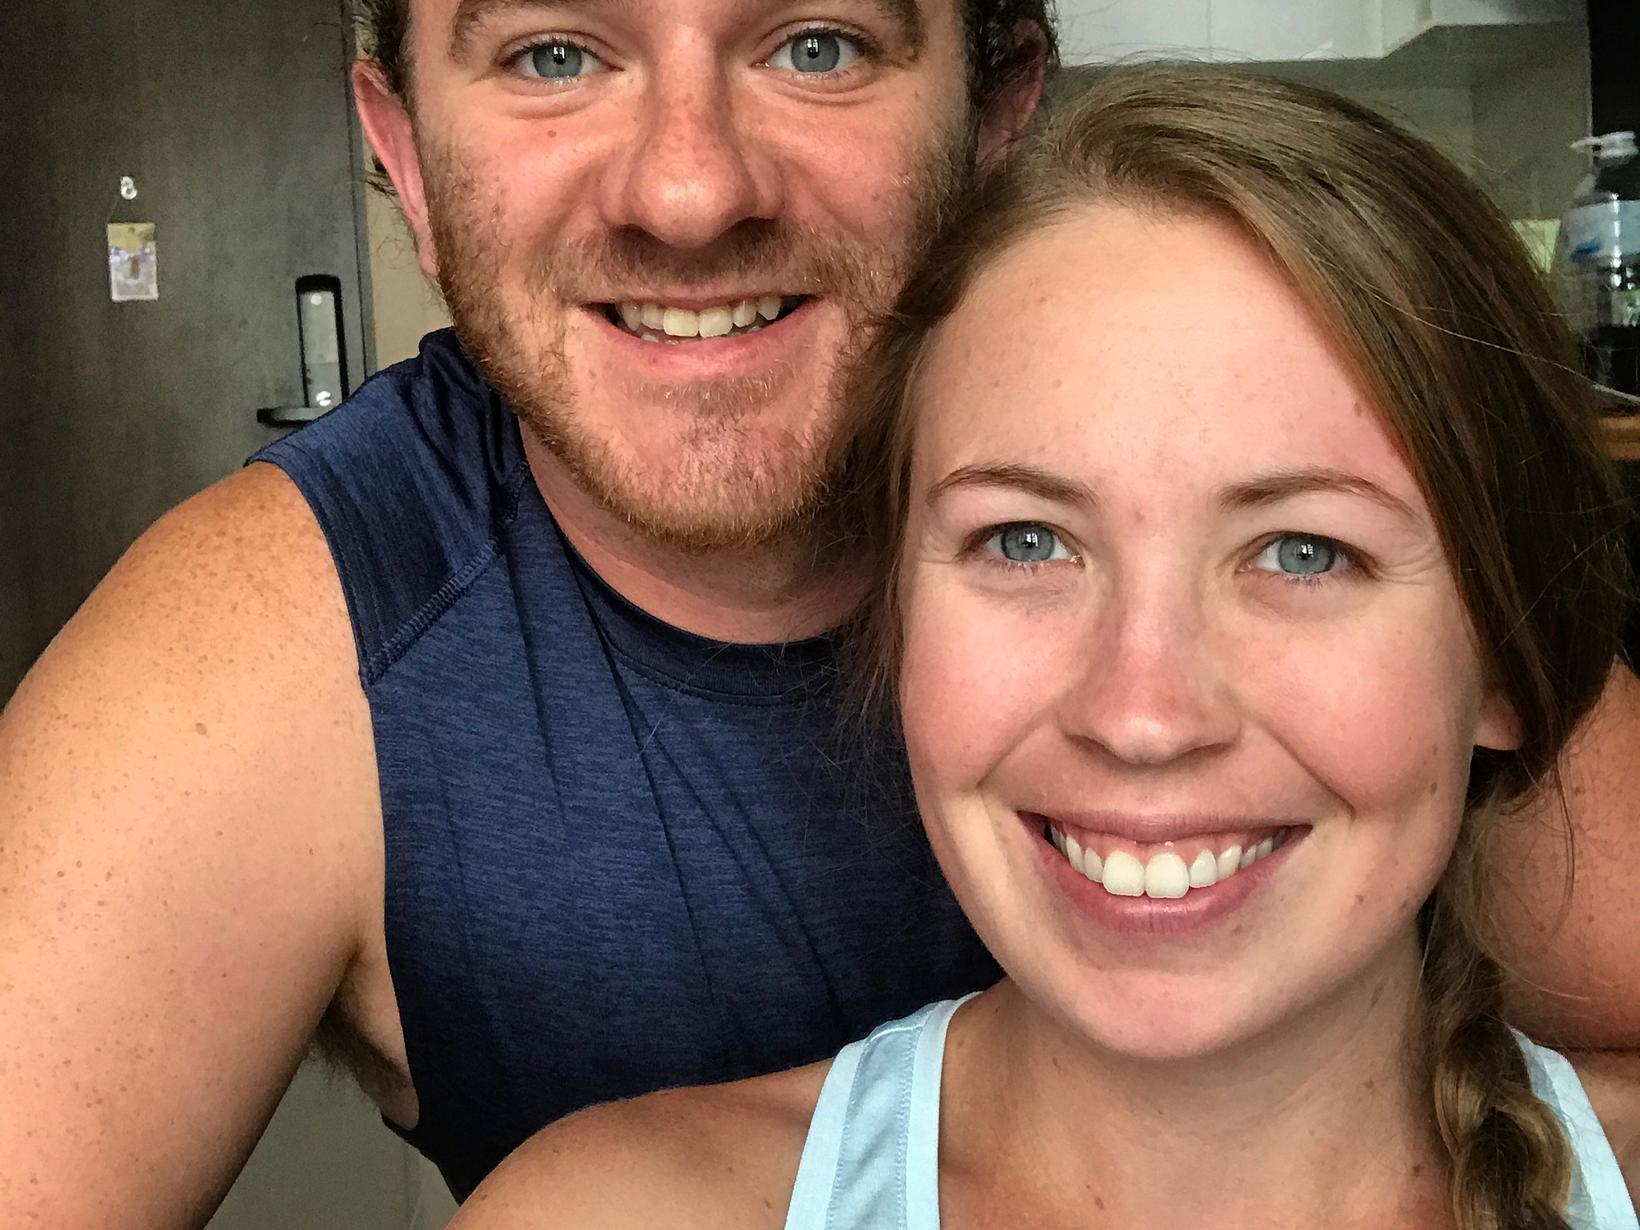 Tori & Anthony from Lusby, Maryland, United States